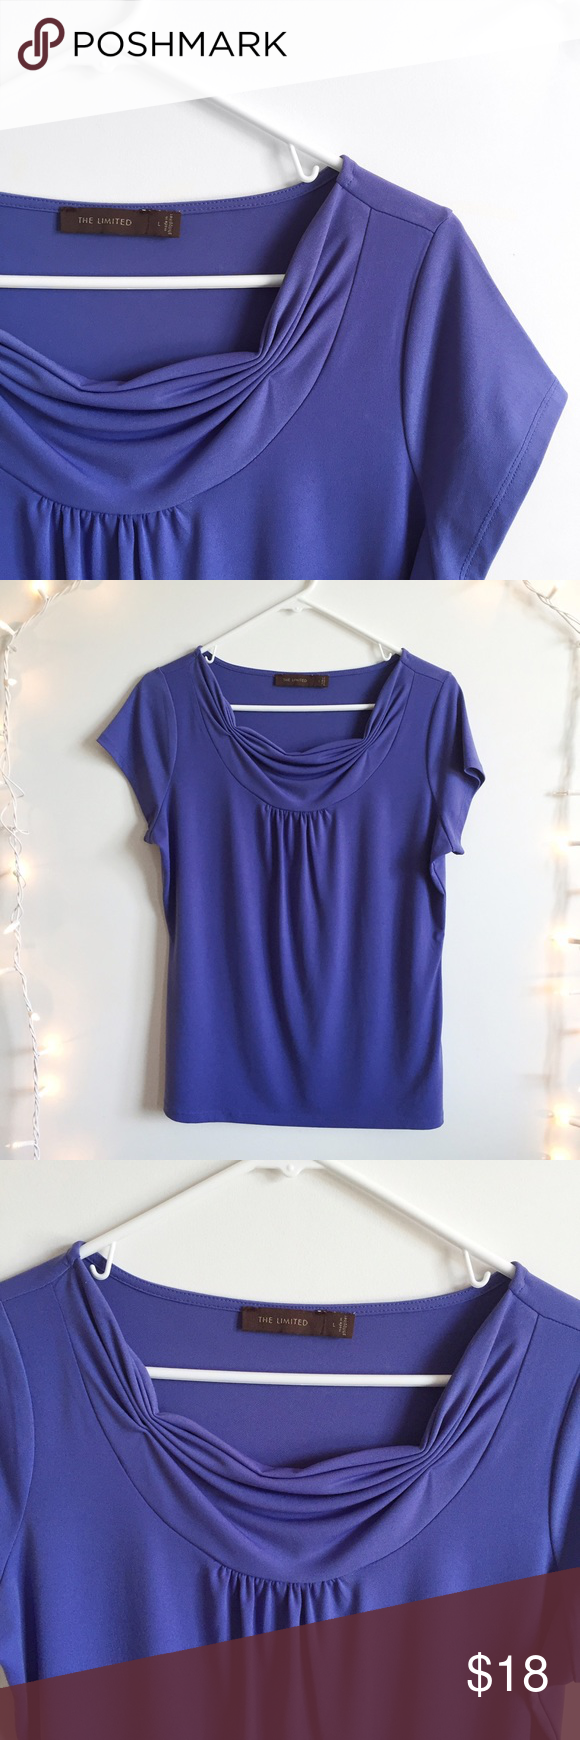 The Limited top Color: periwinkle/purple. In great condition. True to size. Polyester/Spandex. The Limited Tops Blouses